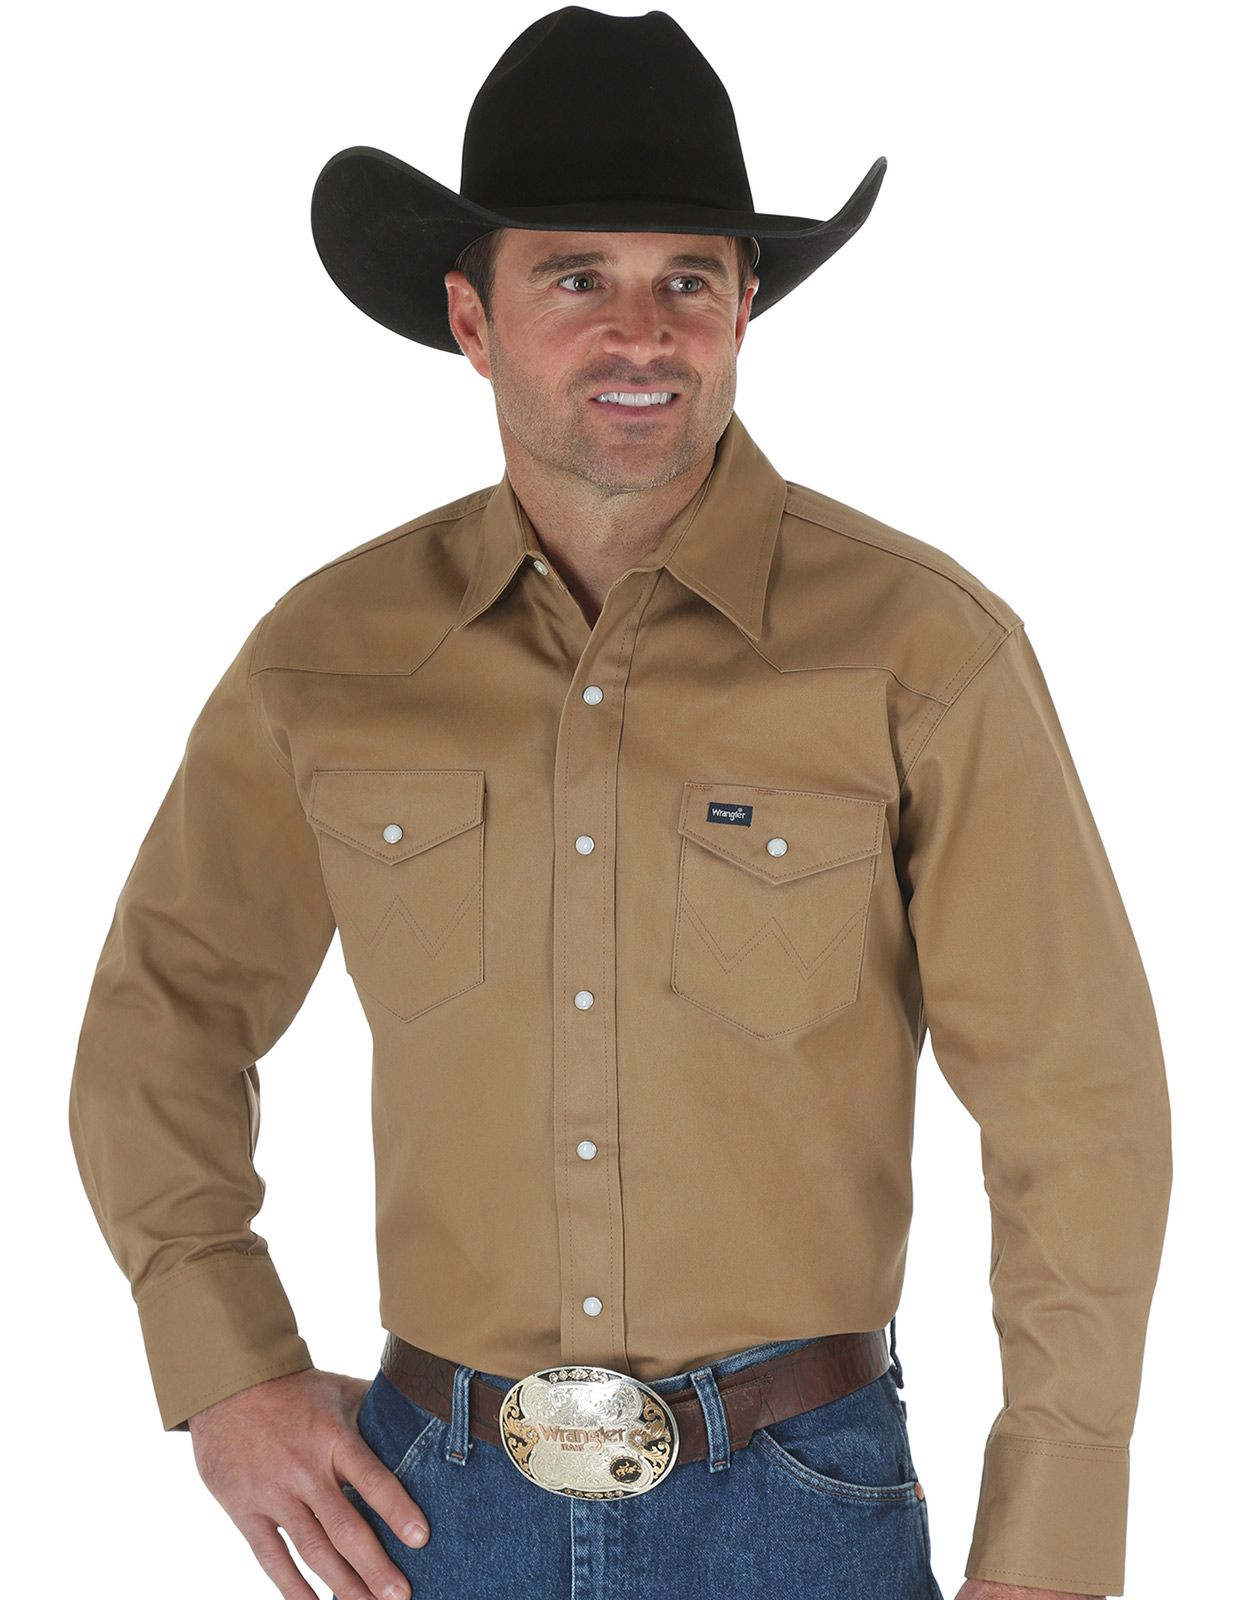 Wrangler Men's Classic Fit Firm Finish Long Sleeve Solid Snap Work Shirt - Rawhide